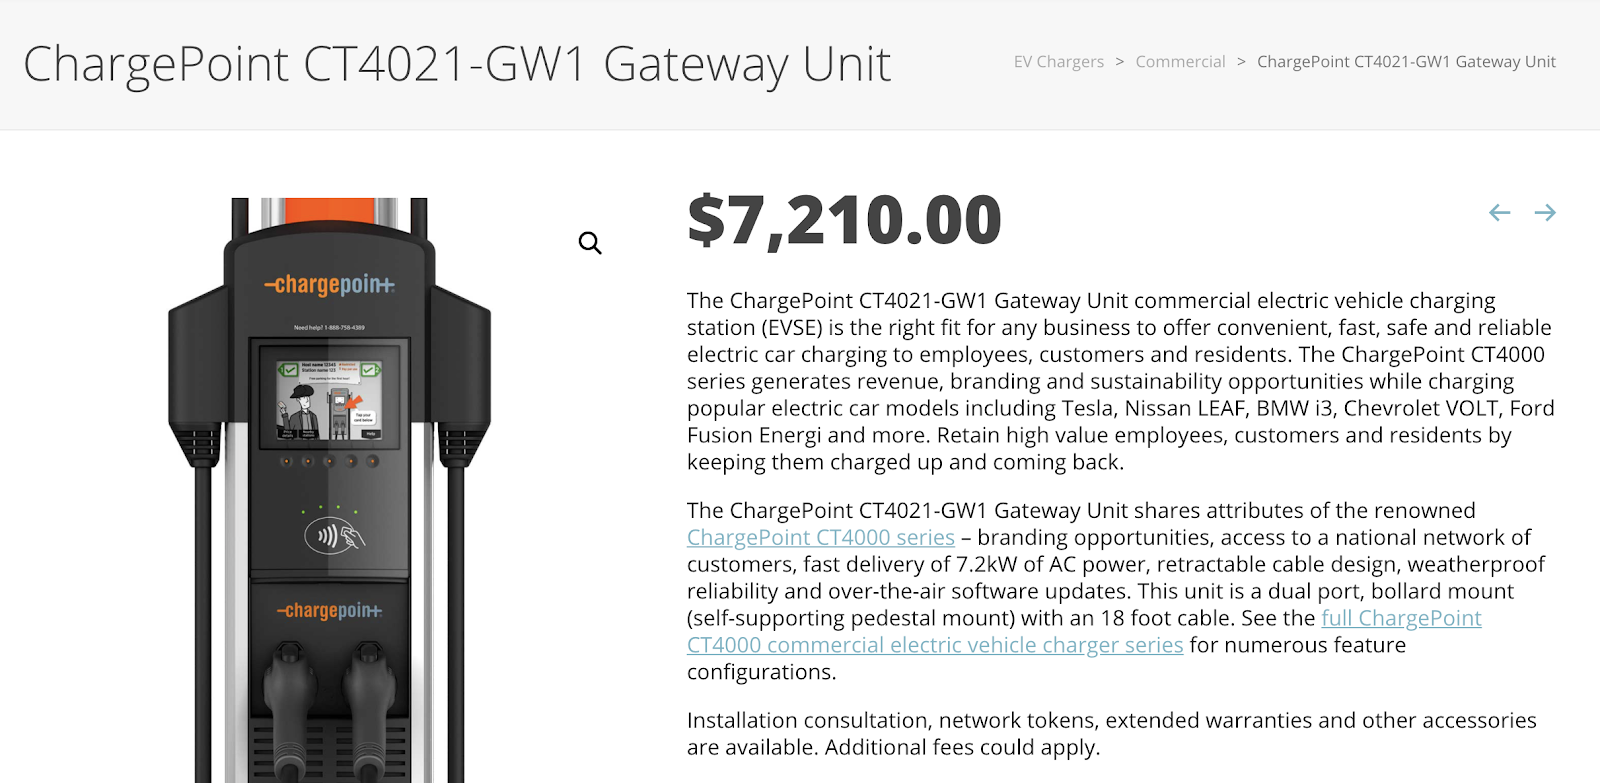 Chargepoint gateway unit price